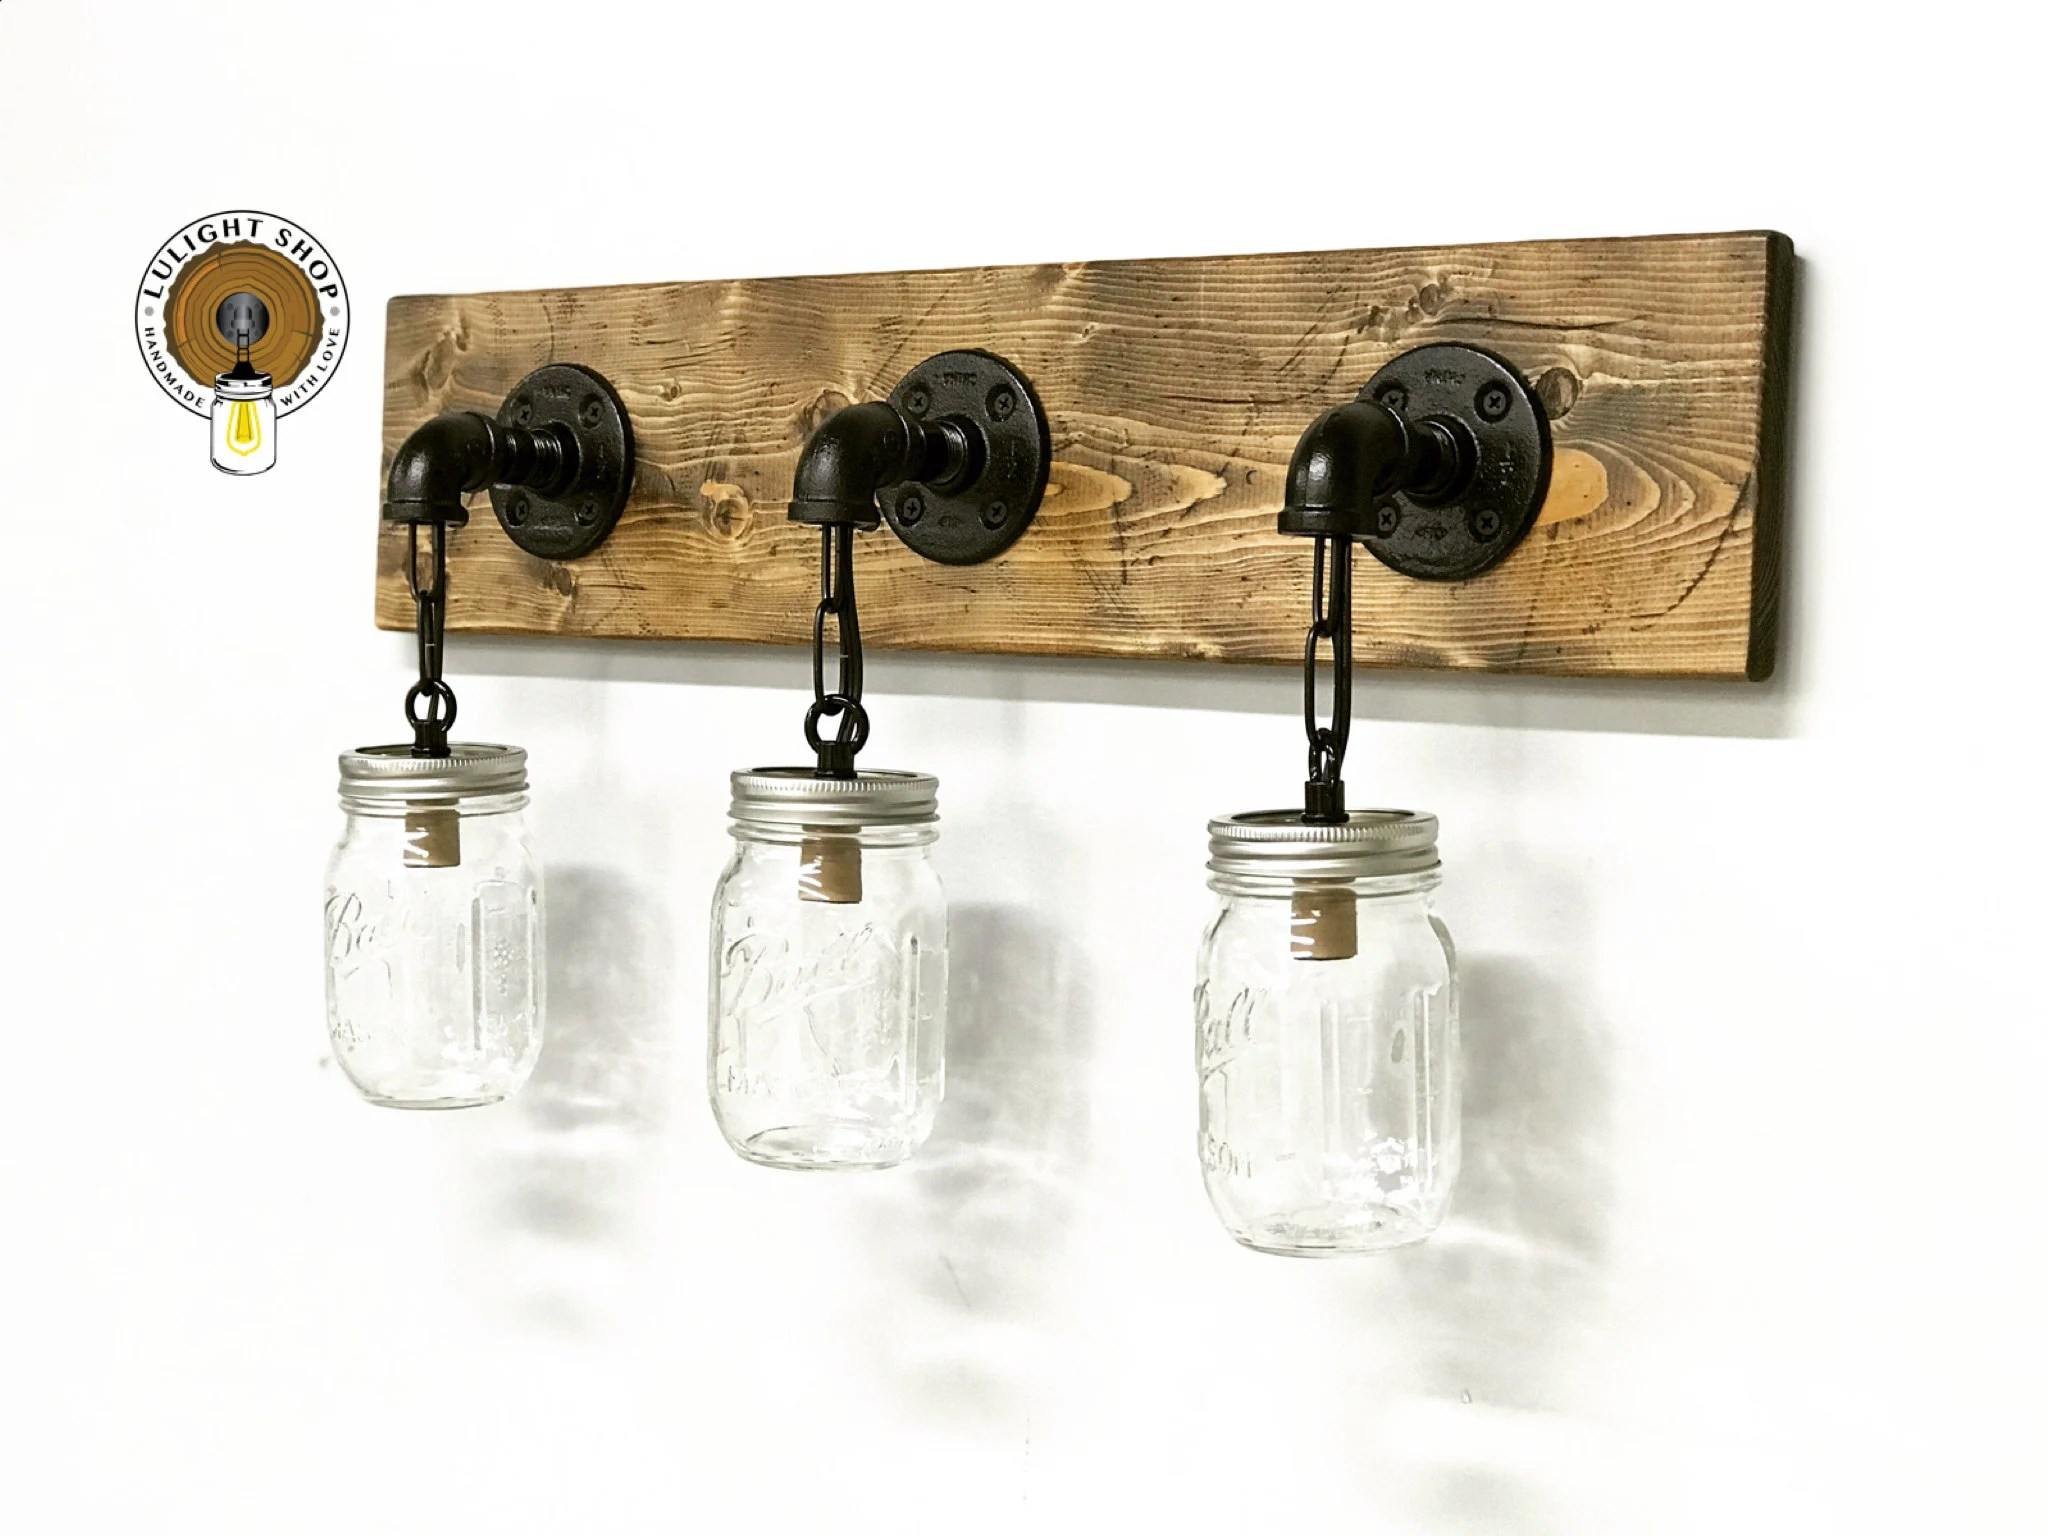 Mason Jar Bathroom Light Rustic Distressed Mason Jar Bathroom Light Lighting Fixtures Wall Lights Mason Jars Bathroom Mirror Lighting Black Pipe Light Fixture